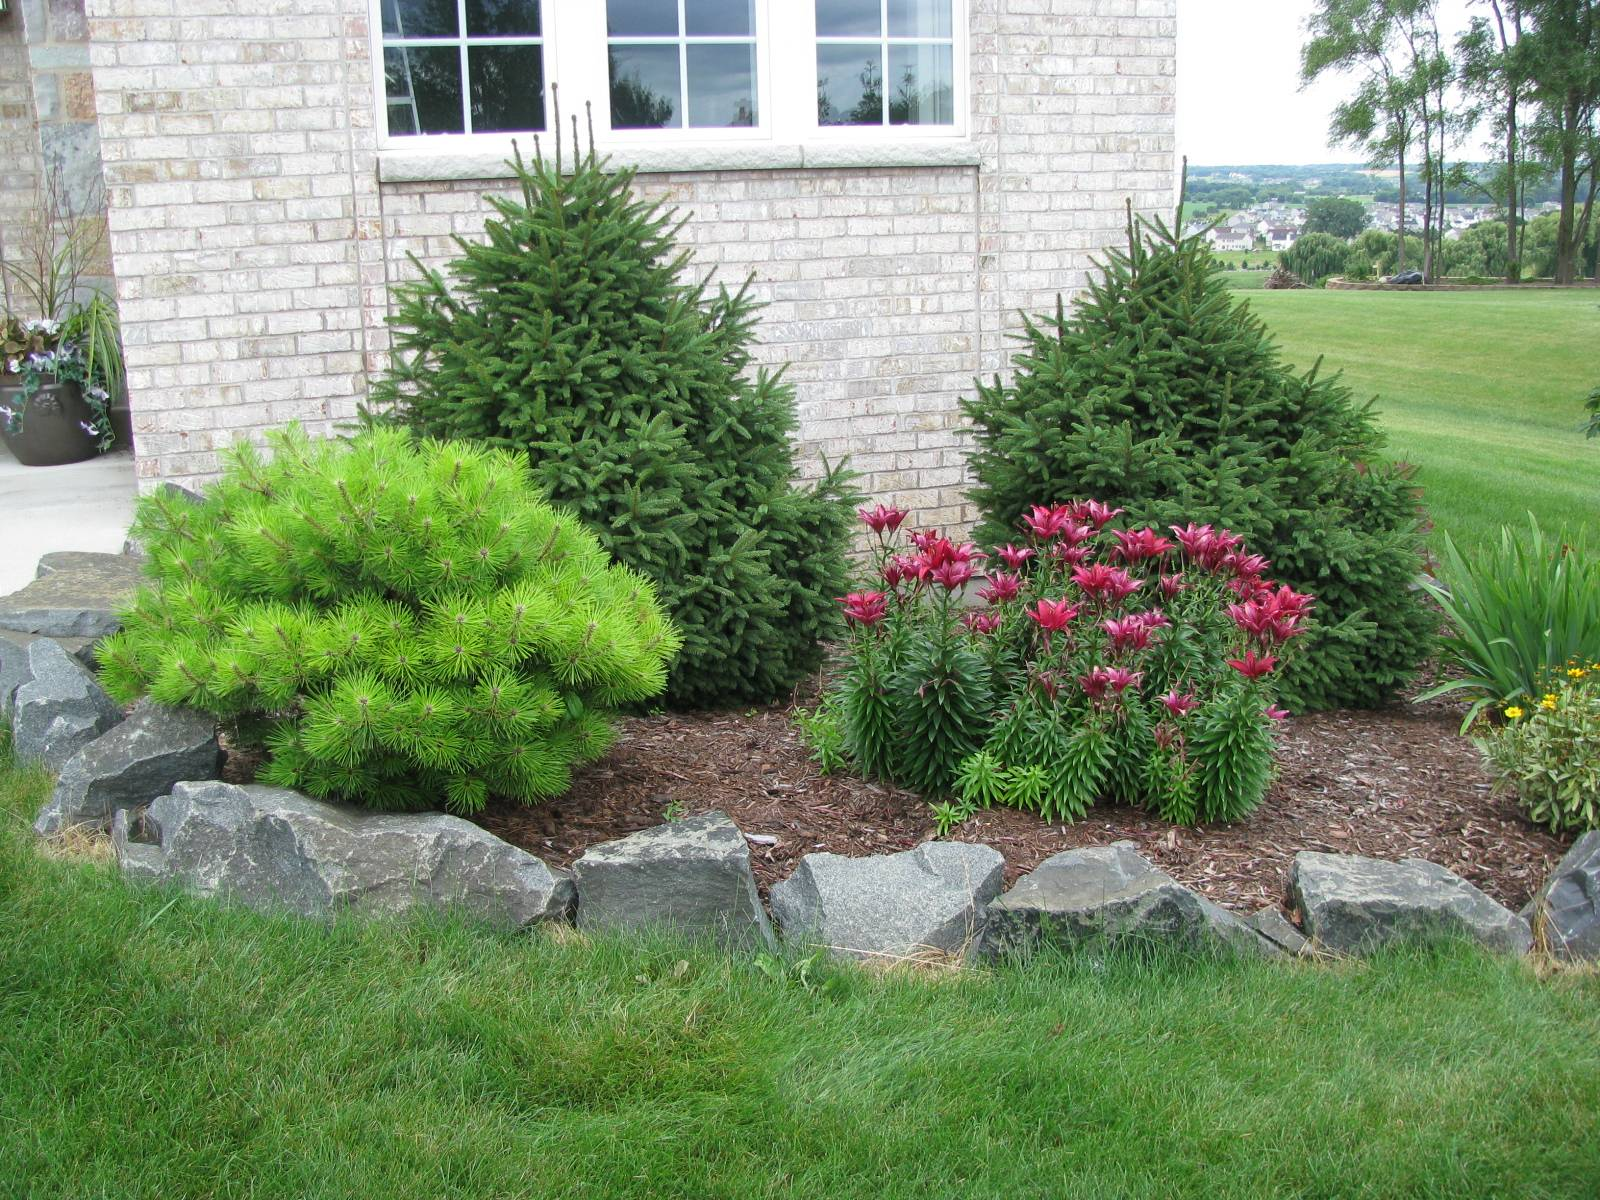 exterior-modern-landscaping-ideas-for-front-house-with-pine-trees-and-red-flower-also-natural-stone-with-front-yard-landscape-design-ideas-plus-front-yard-landscaping-awesome-exterior-fo